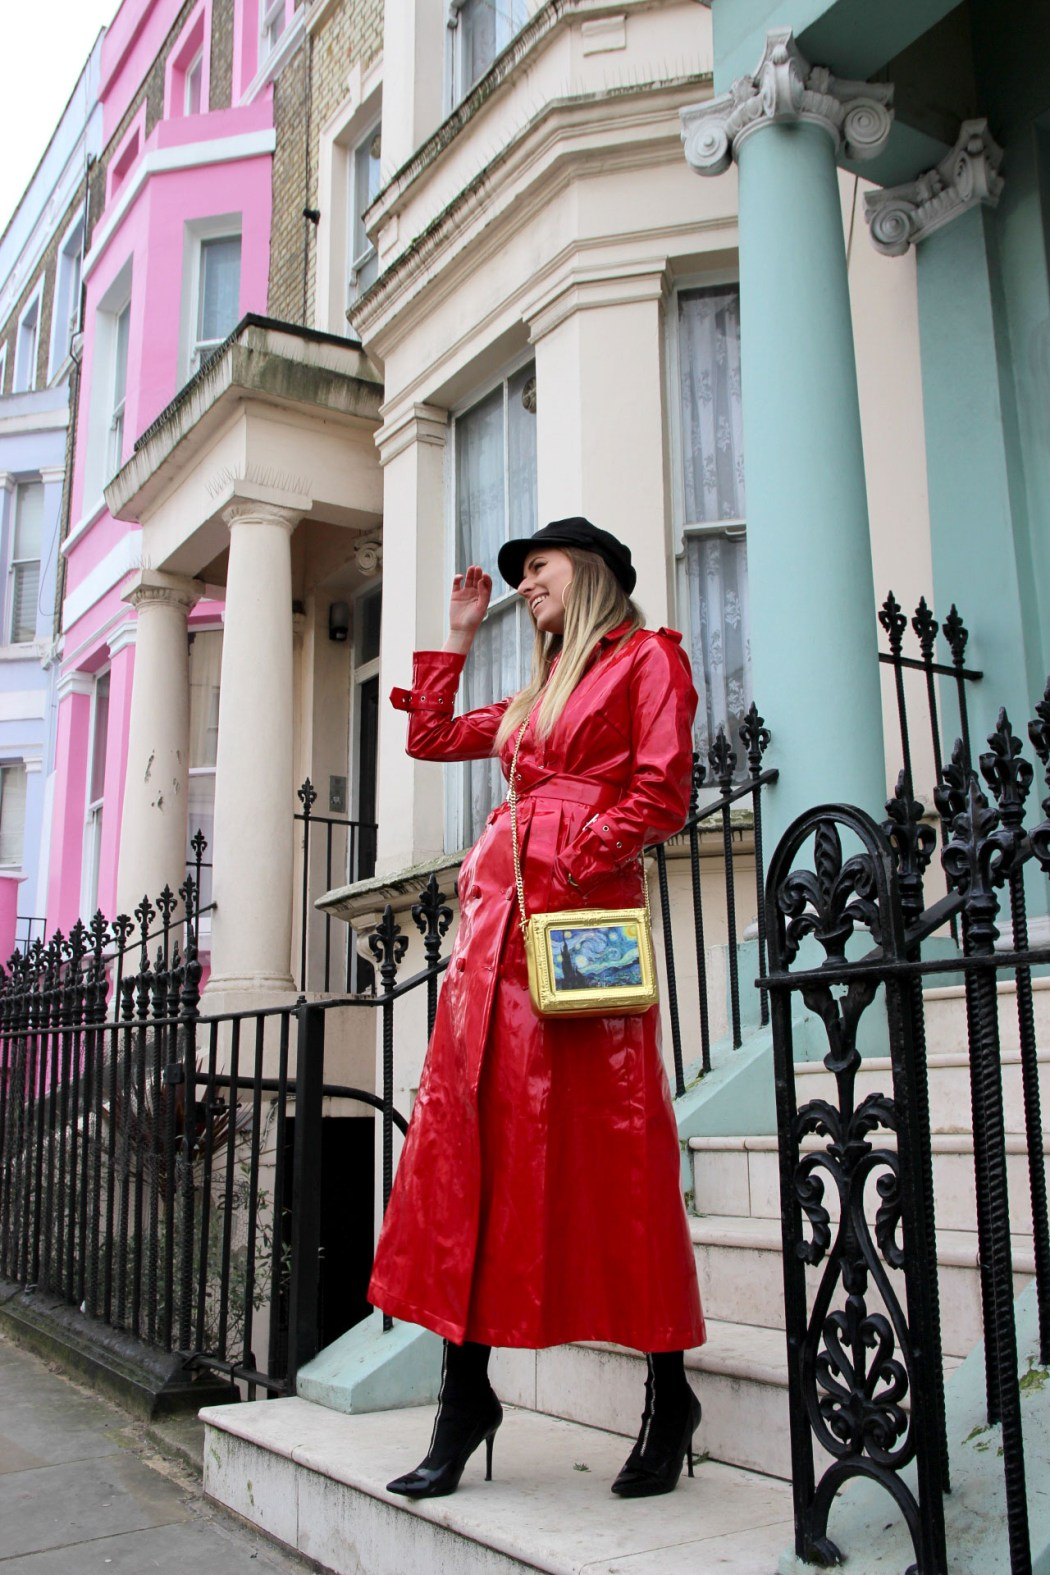 Melissa Zahorujko and colourful houses in Notting Hill, West London